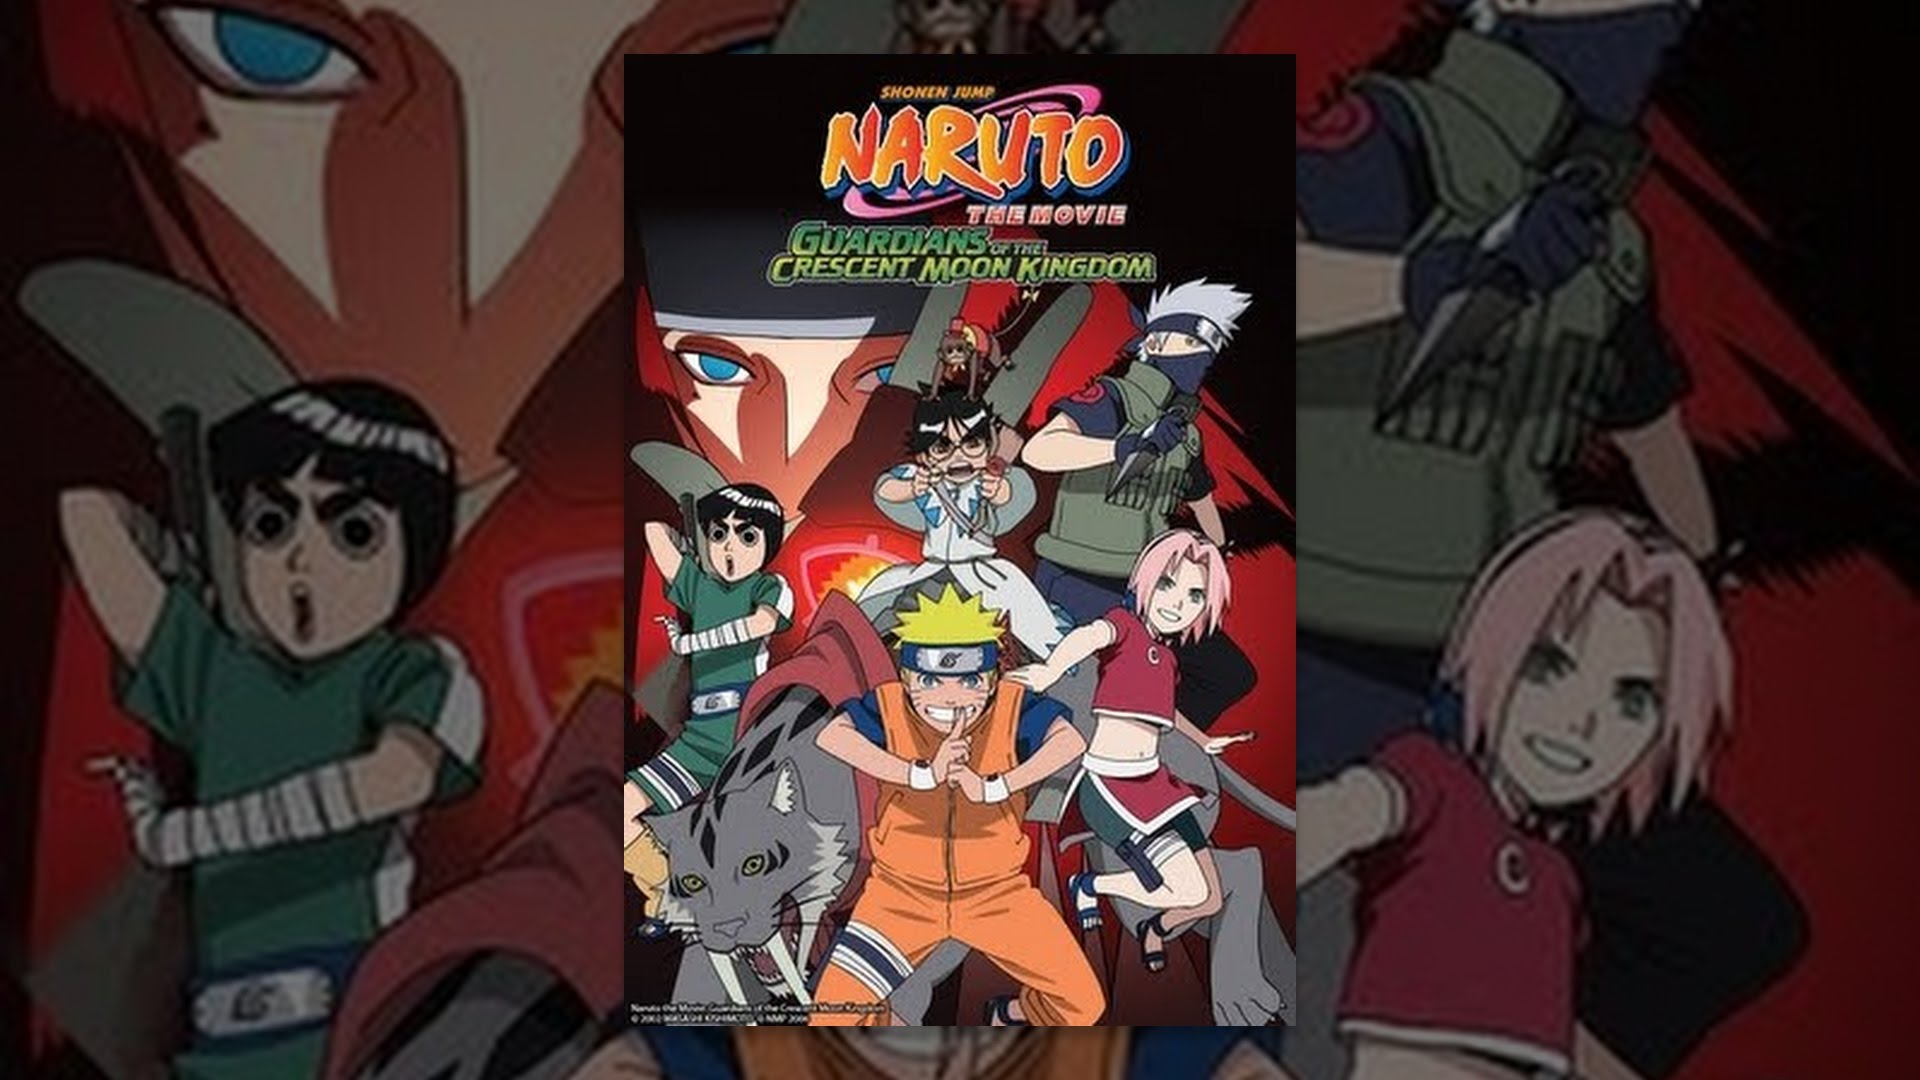 Naruto: The Movie – Guardians of the Crescent Moon Kingdom